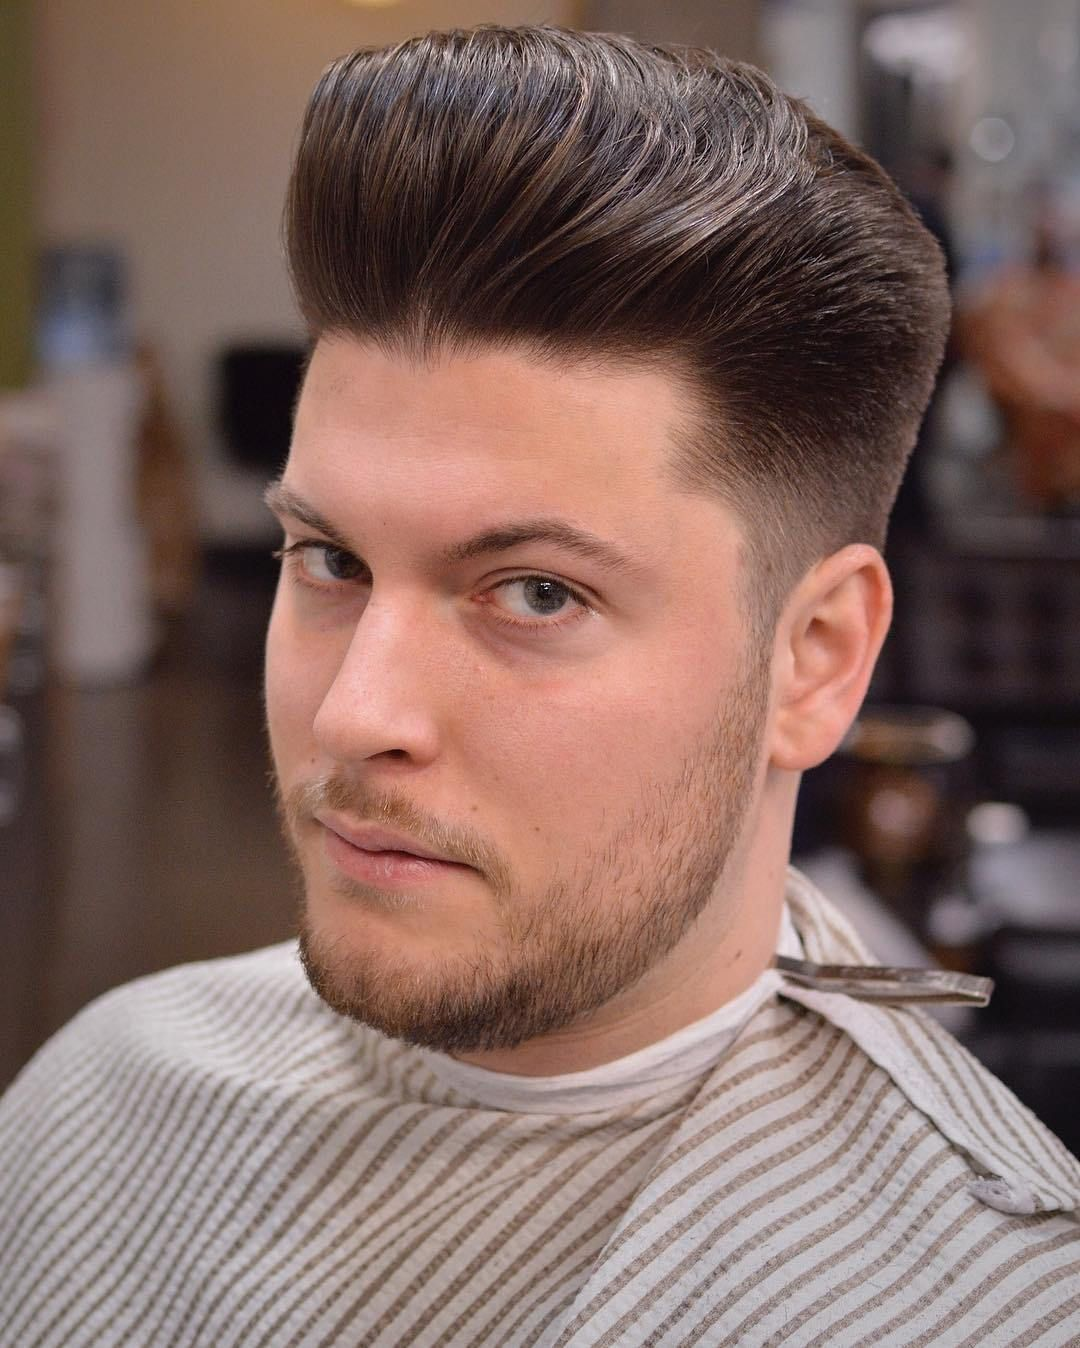 Classic Pompadour Hairstyles For Round Faces Round Face Men Pompadour Men